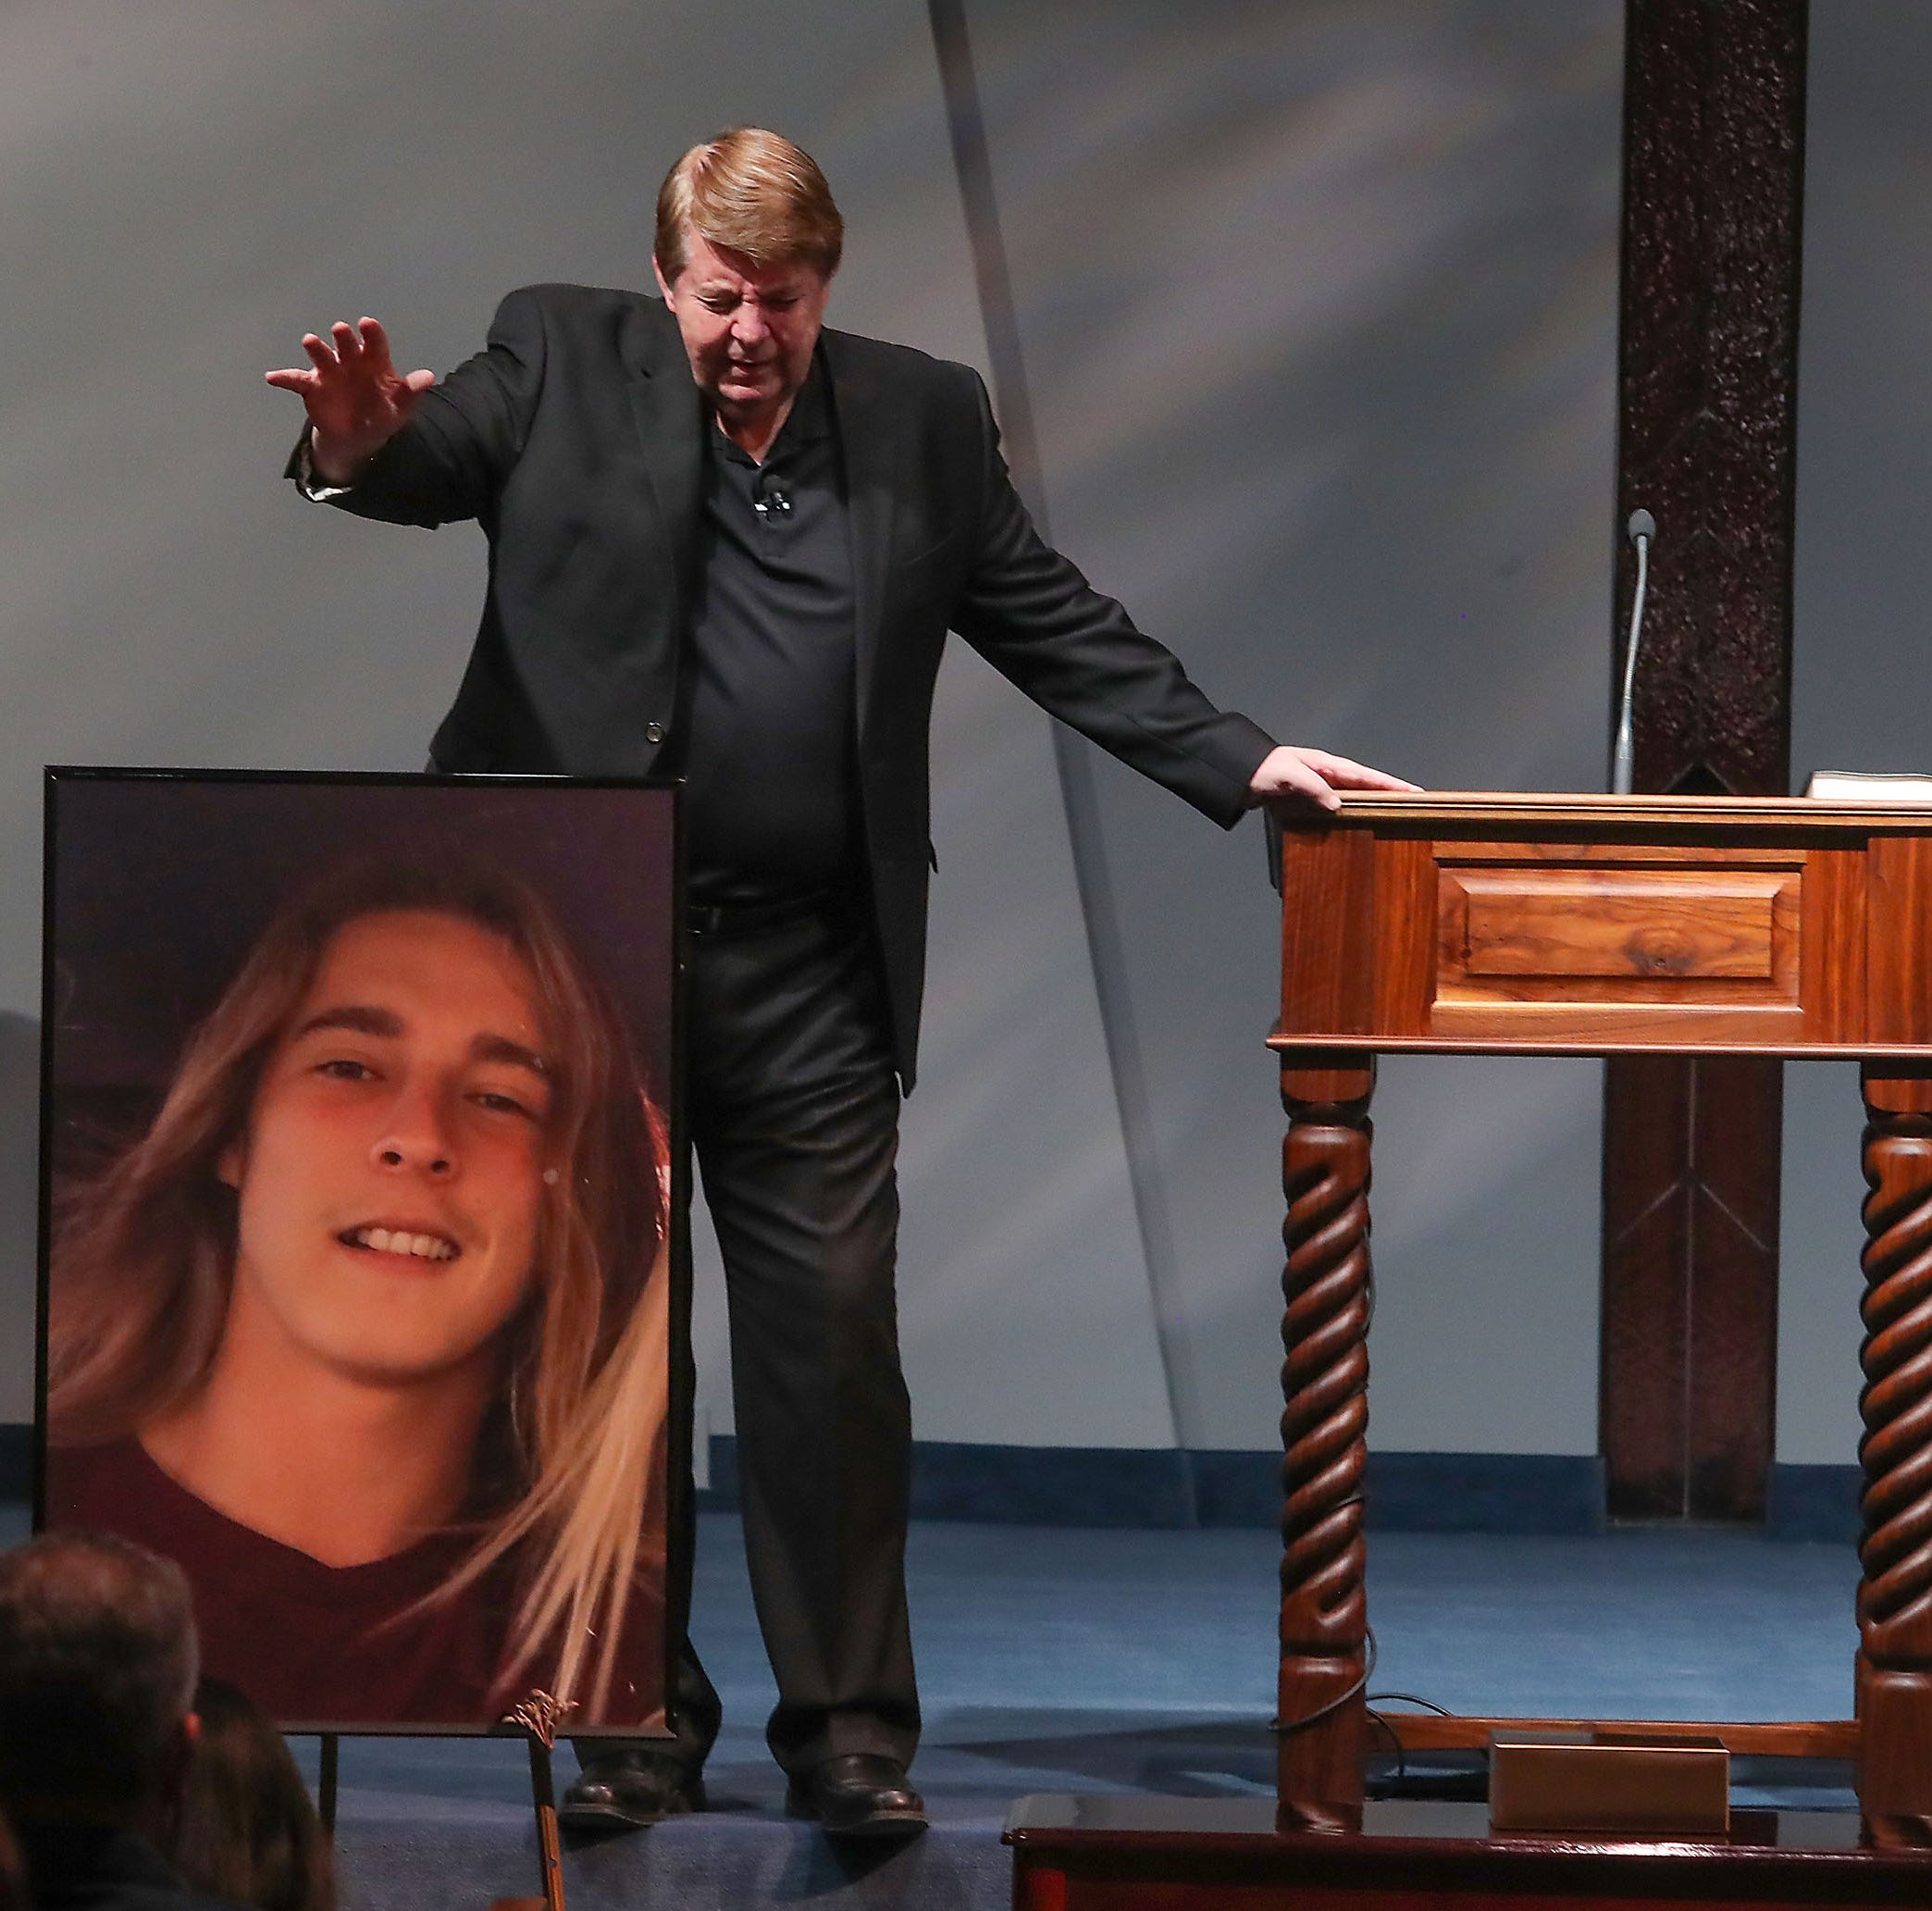 Messages of hope, faith resonate at service for Palm Springs shooting victim Jacob Montgomery